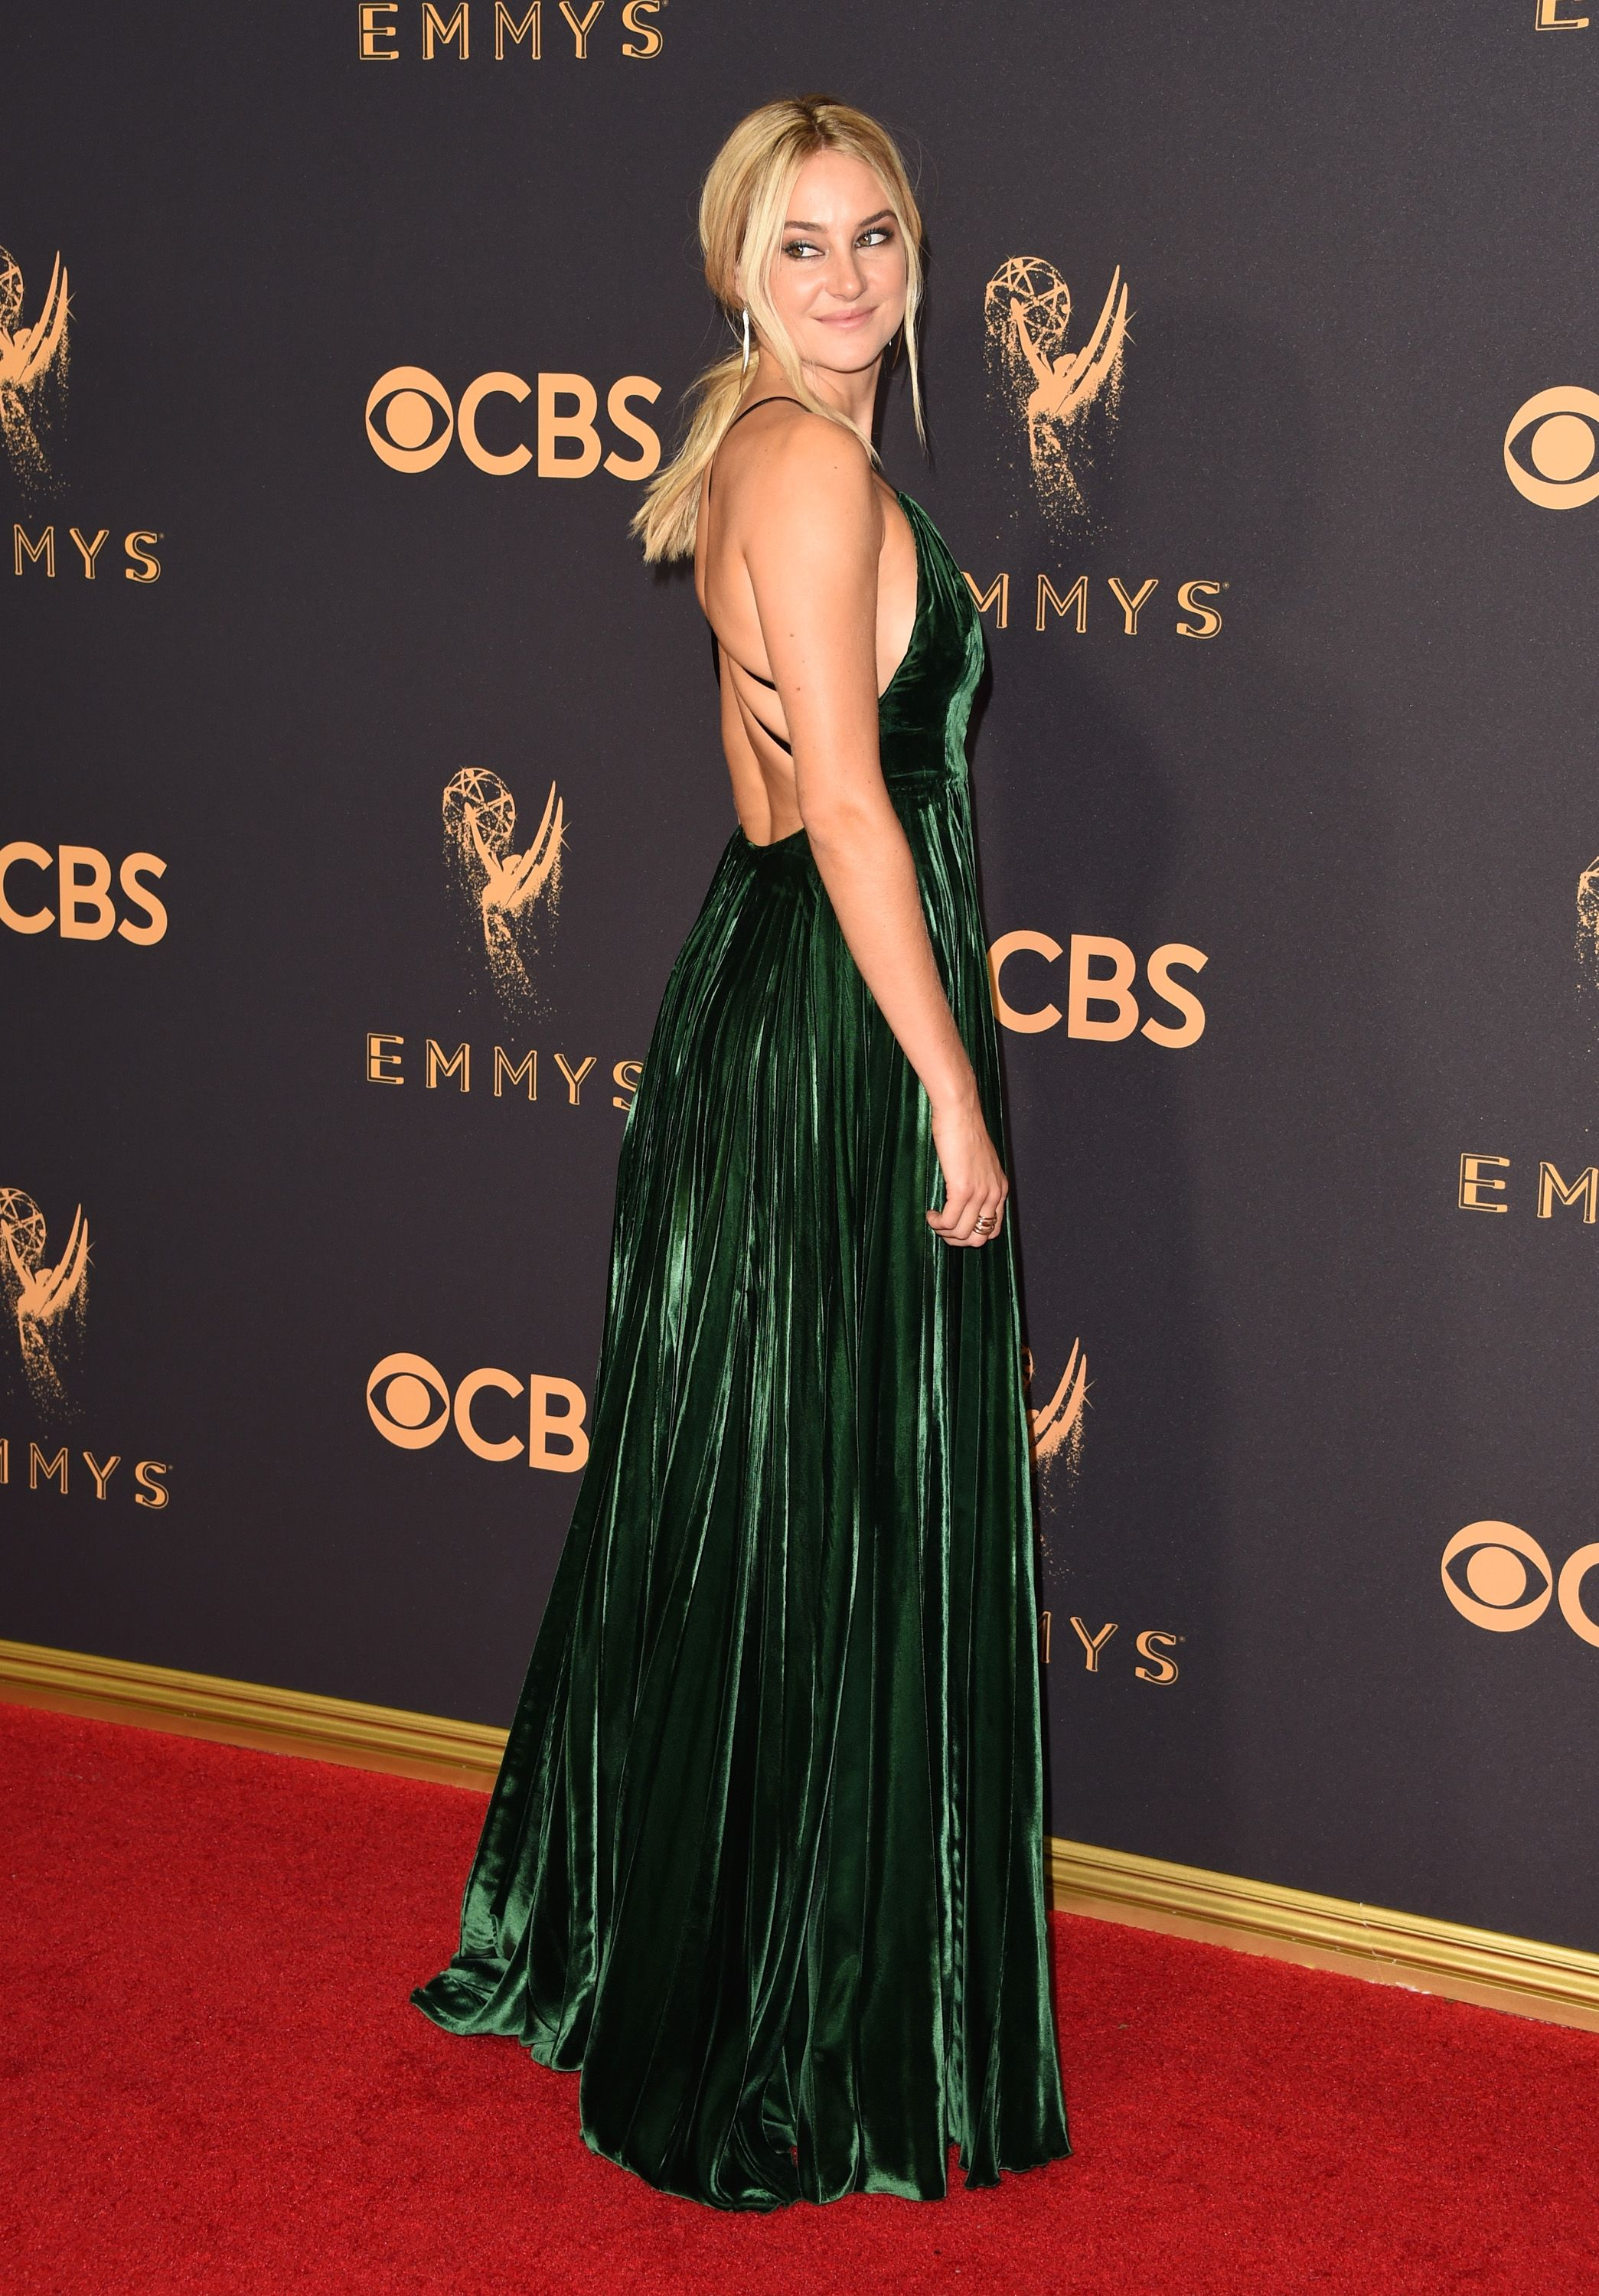 Every Celebrity Look from the 2017 Emmys Red Carpet